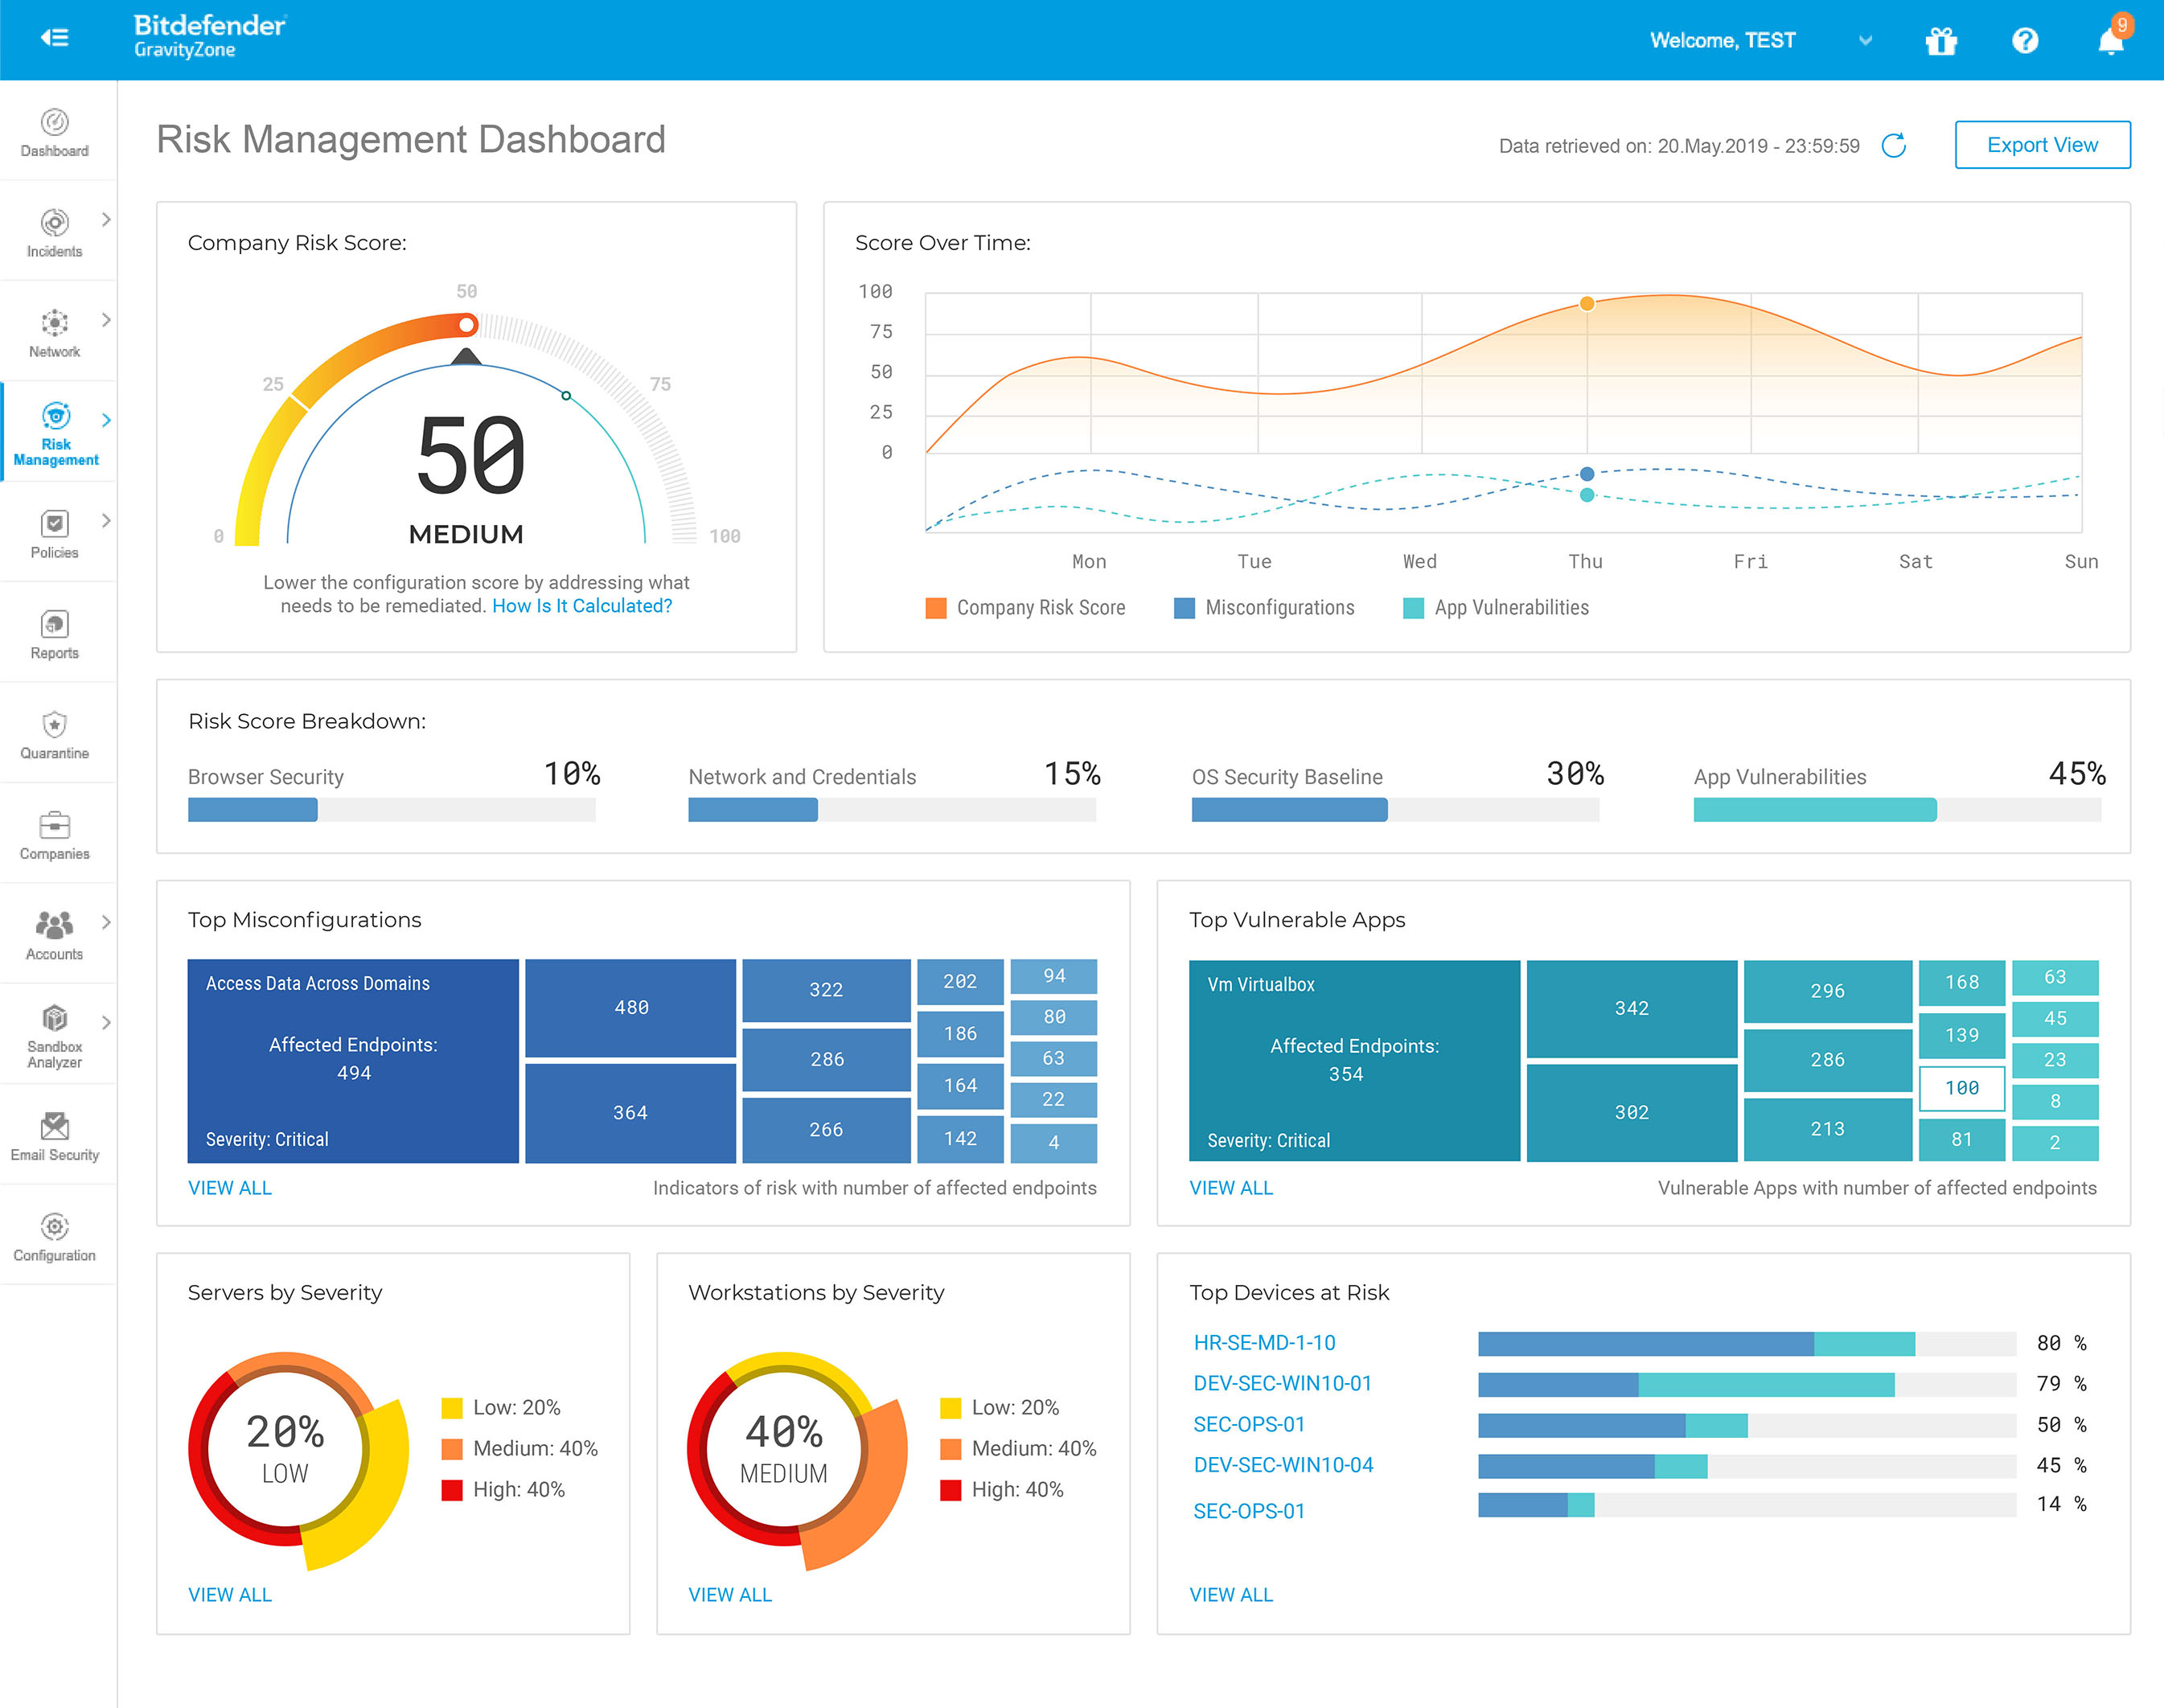 GravityZone Cloud MSP Security - console dashboard weergave en data-analyse